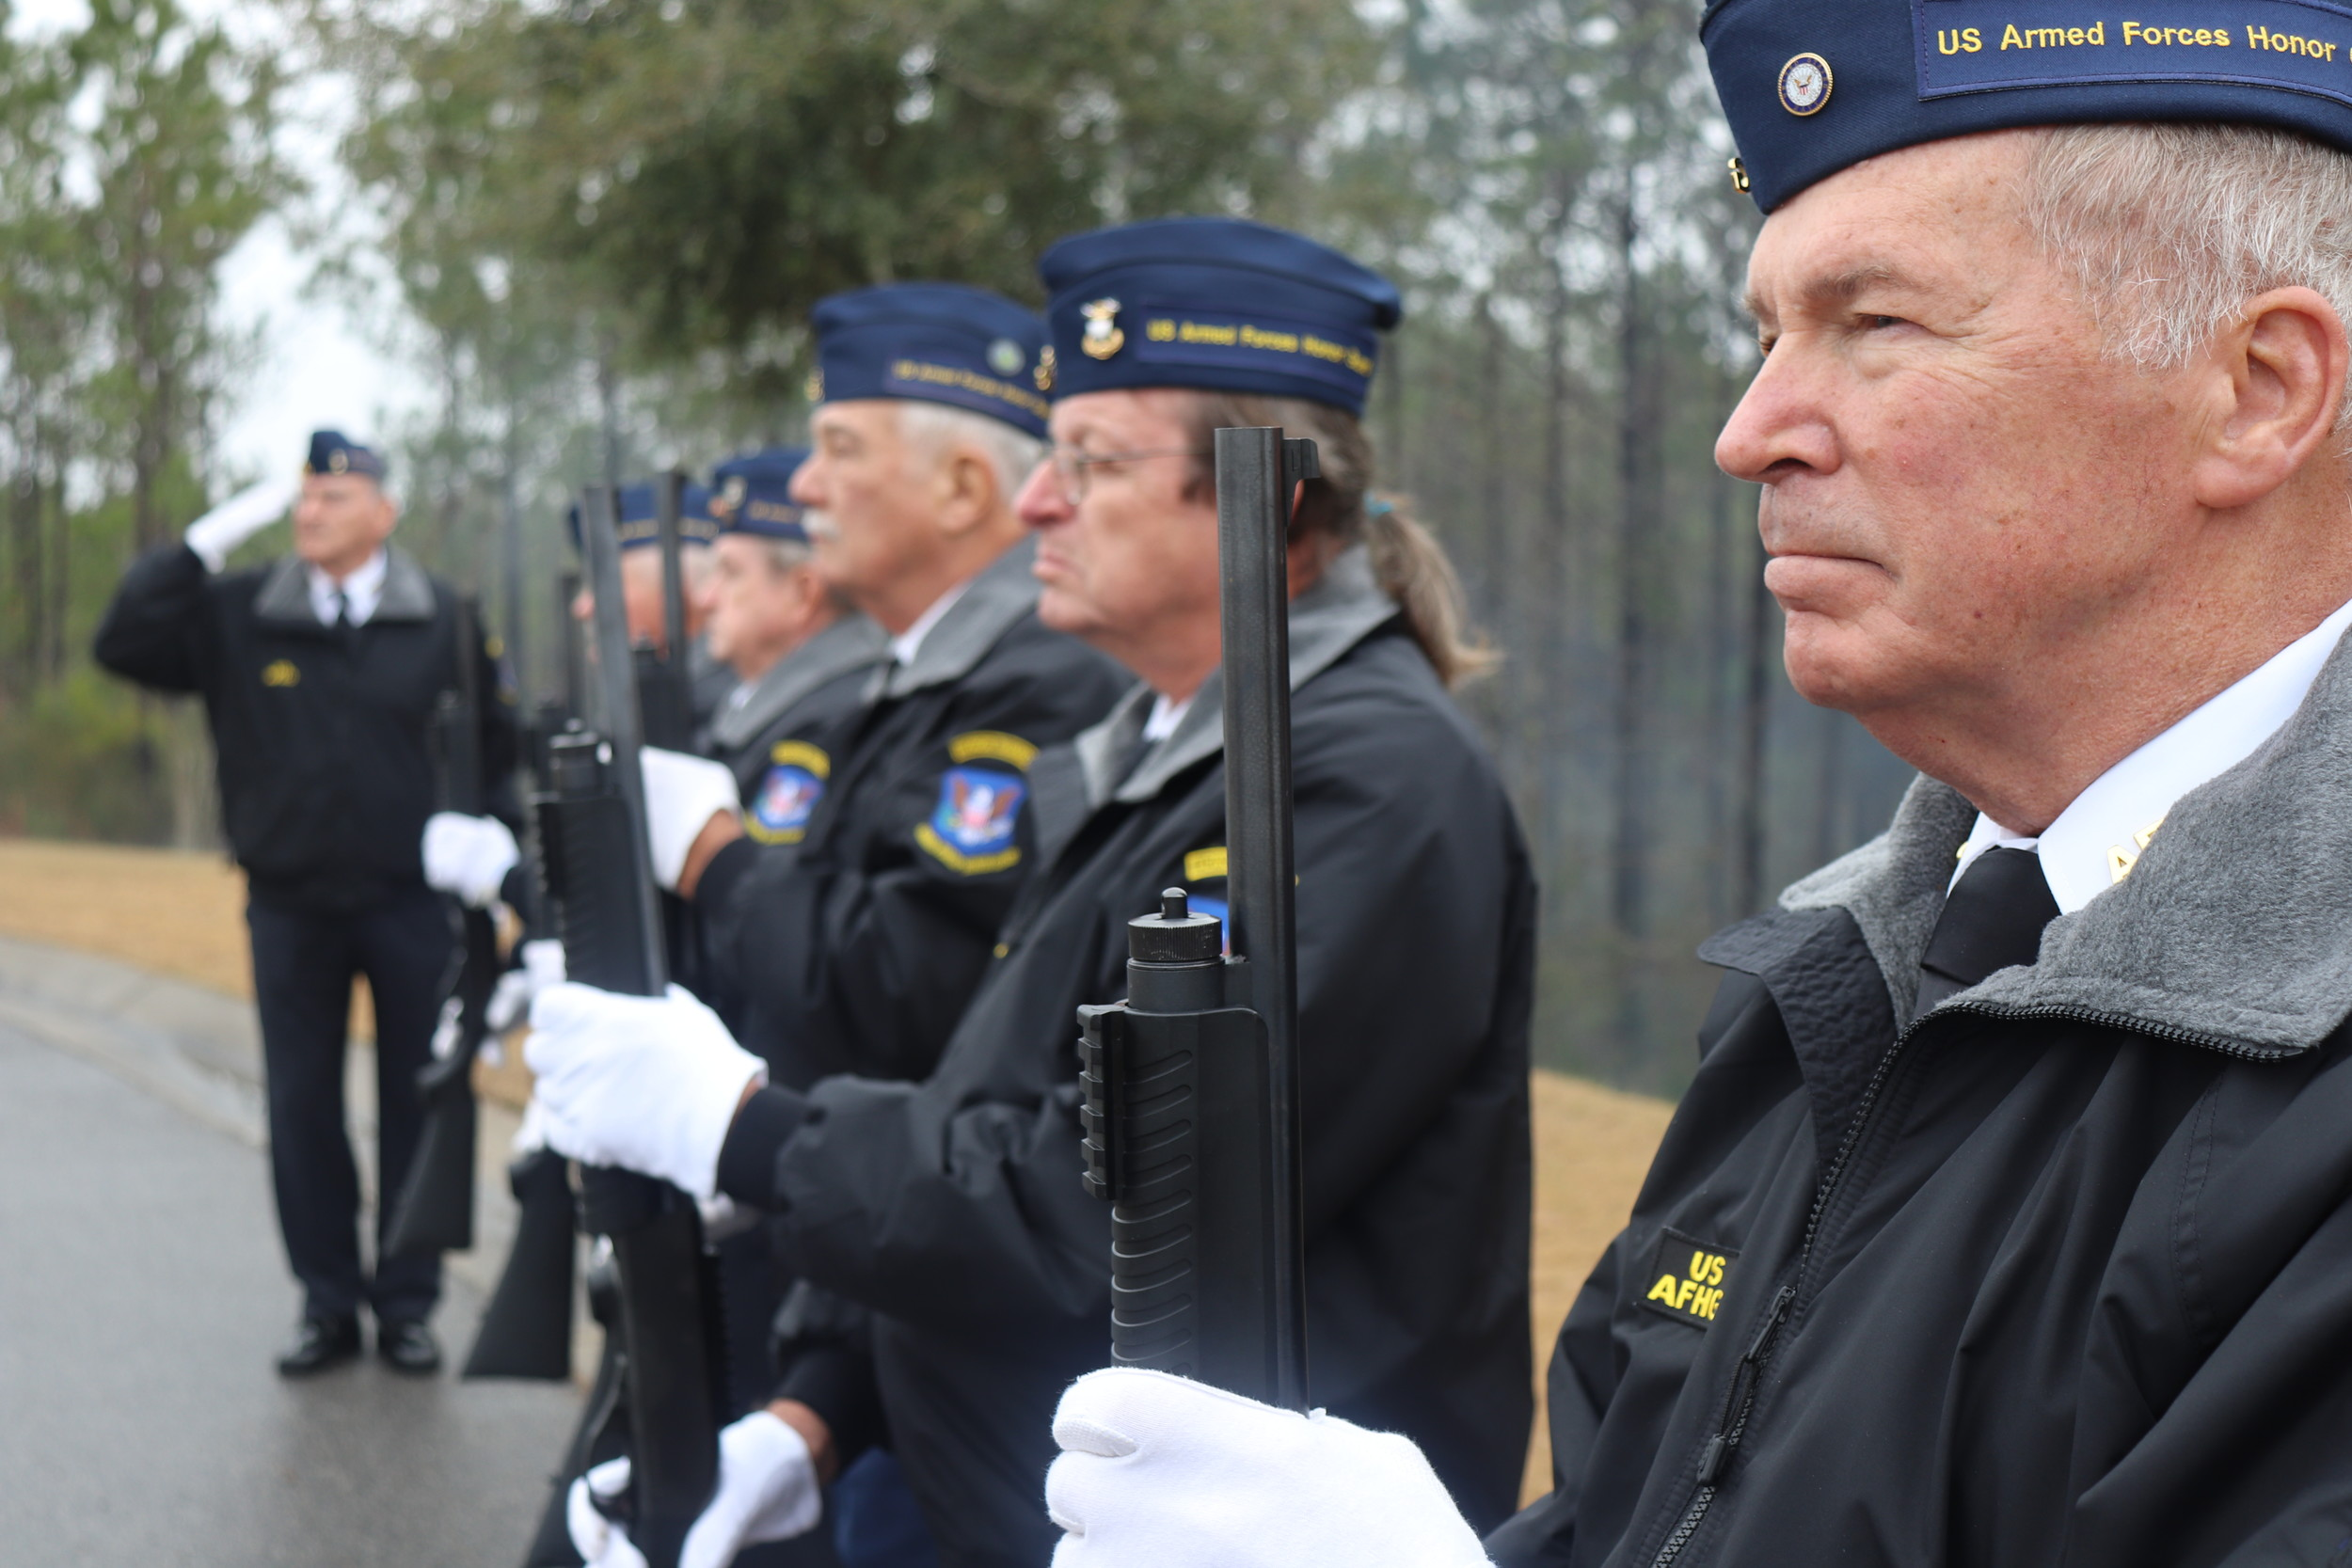 Members of the Central Baldwin County Armed Forces Honor Guard stand at the ready before the start of a veteran's funeral at the Alabama State Veterans Memorial Cemetery in Spanish Fort.